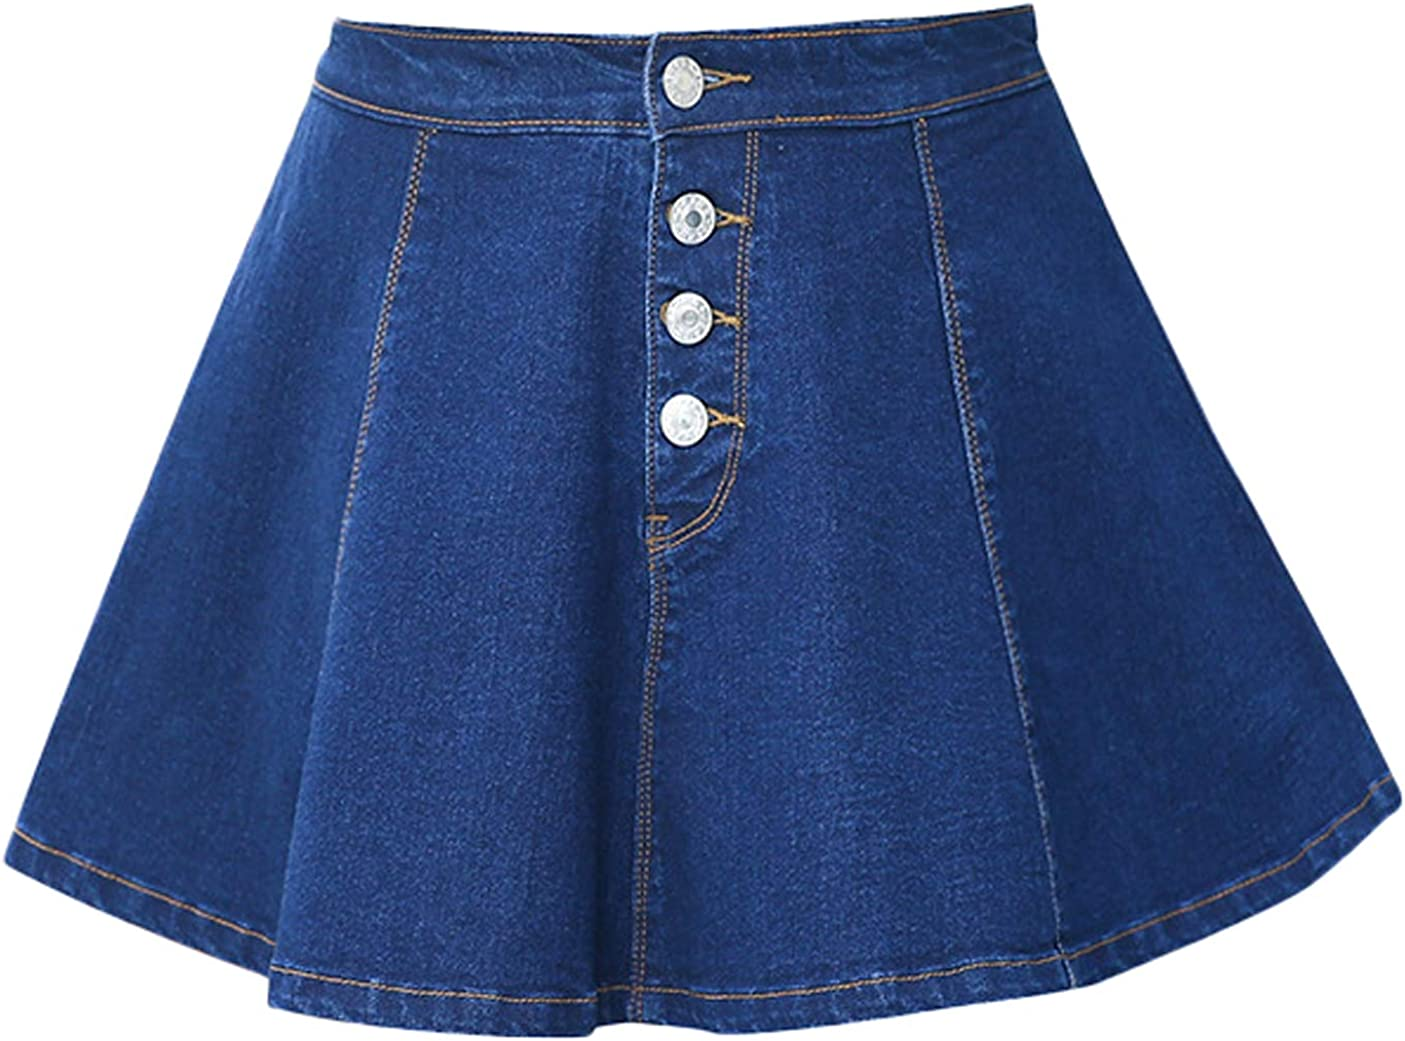 Youhan Women's Plus Size Casual Pleated A-Line Mini Denim Skirts